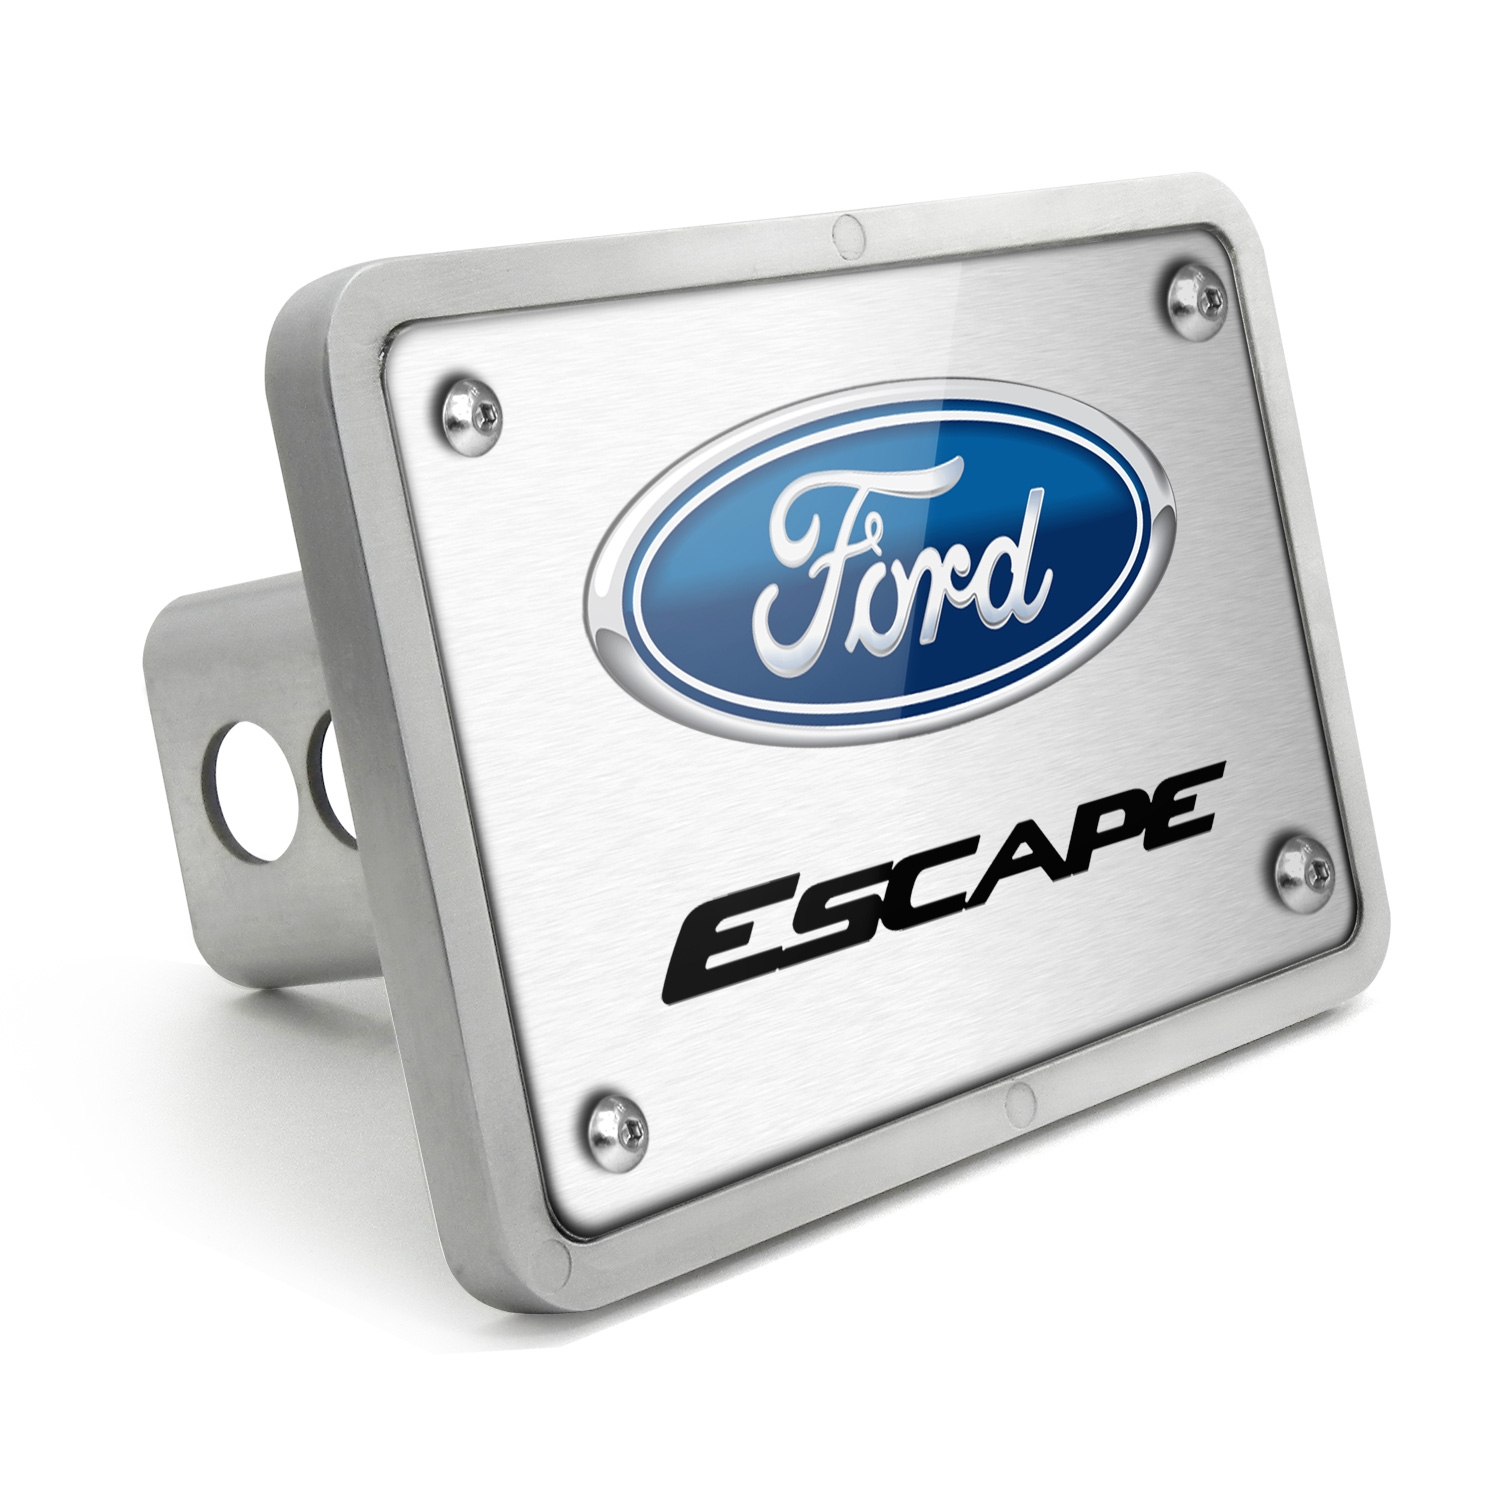 Ford Escape UV Graphic Brushed Silver Billet Aluminum 2 inch Tow Hitch Cover